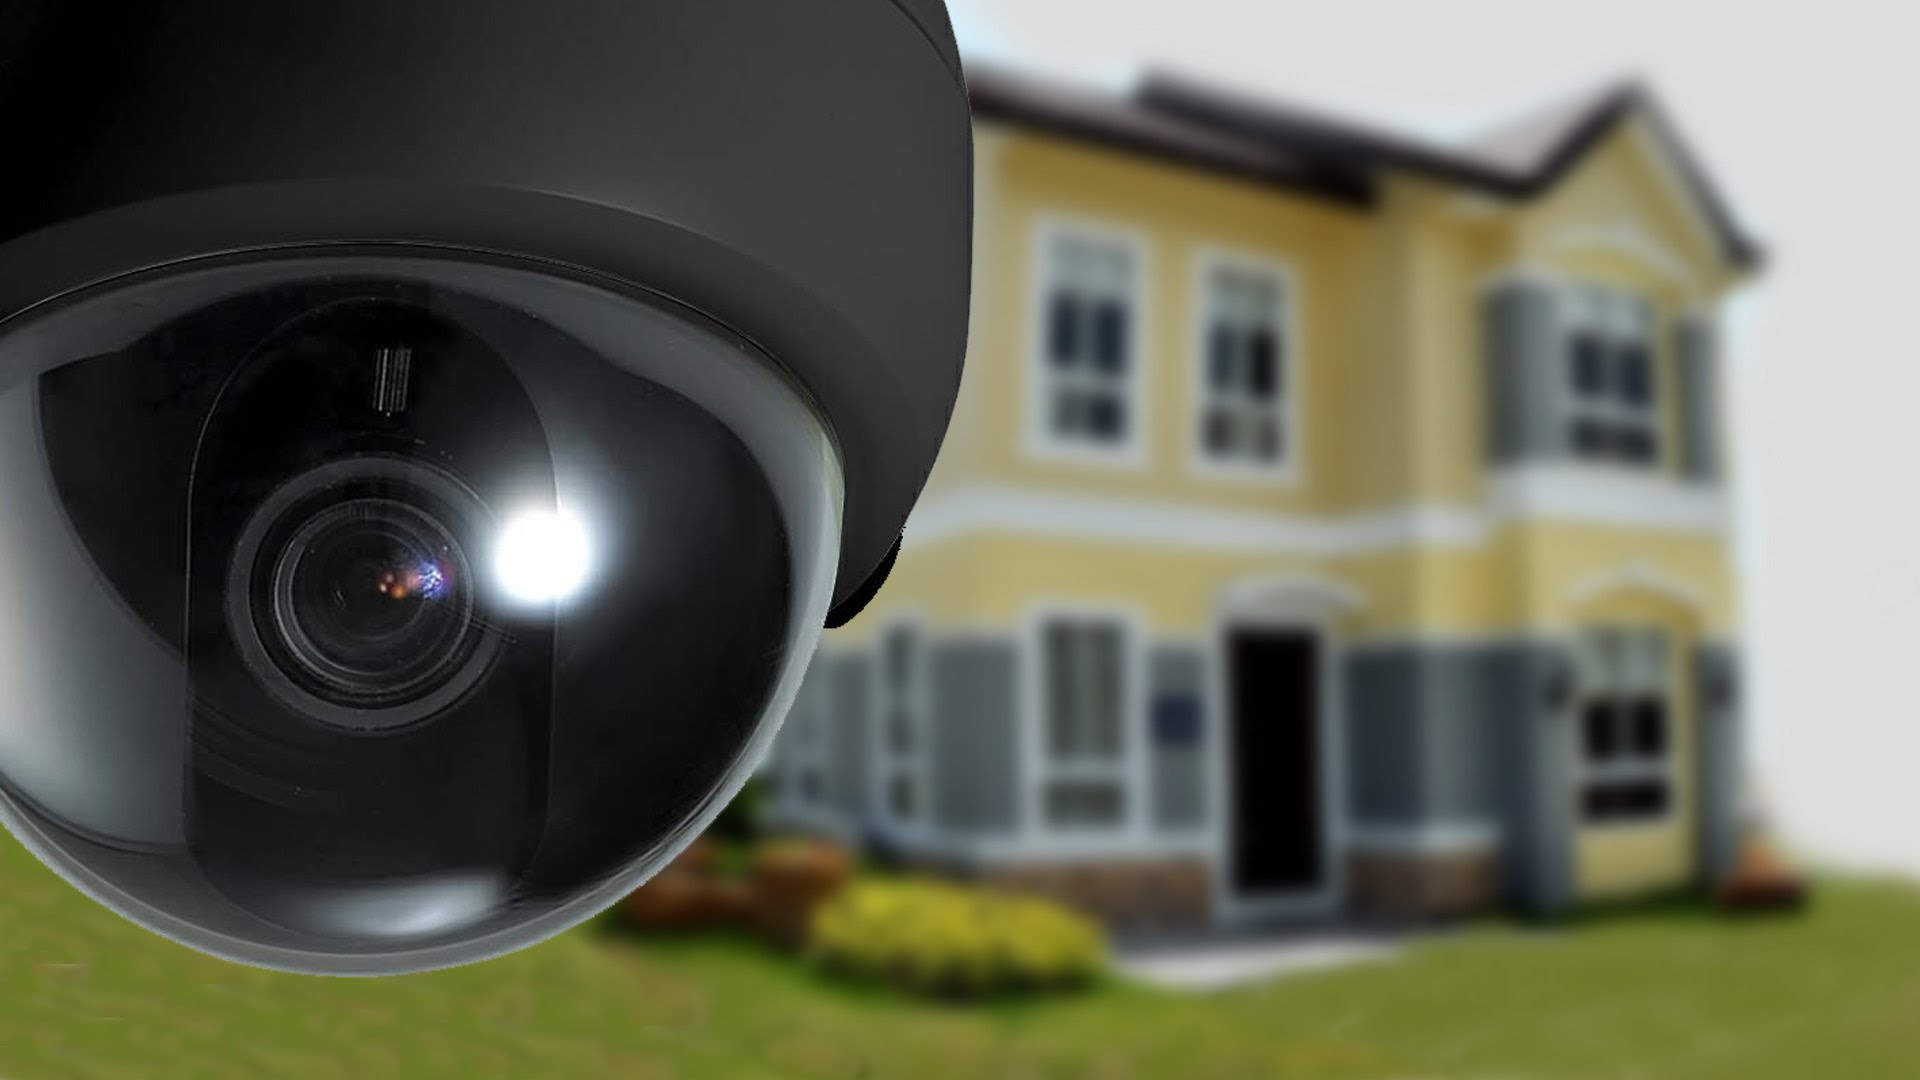 What are important selection parameters for a reliable home security system